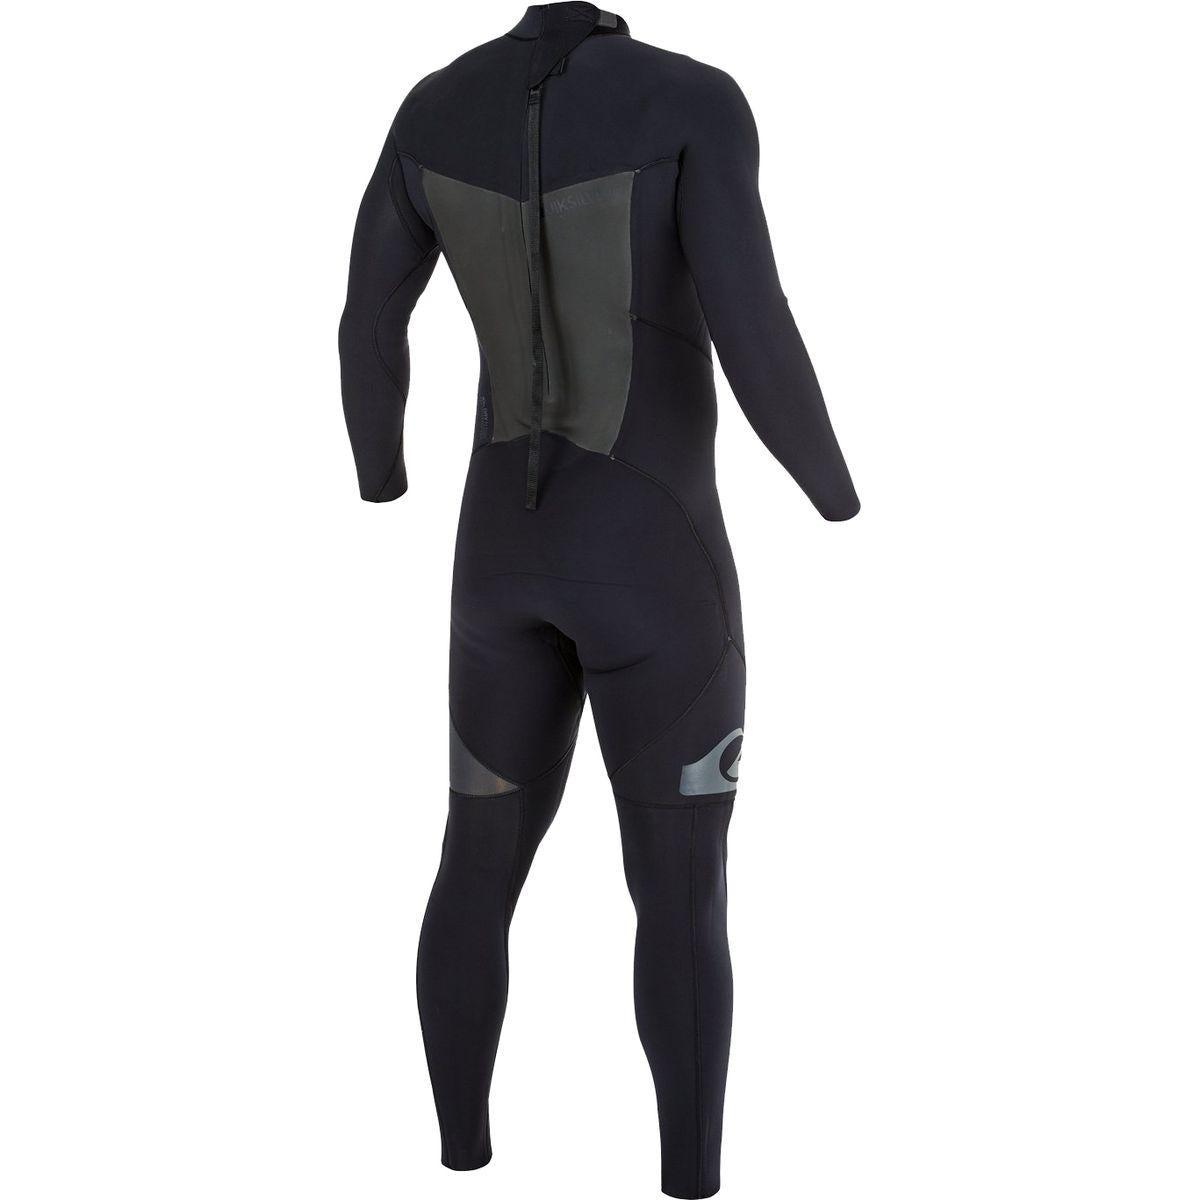 Quiksilver Syncro 5/4/3mm Full Wetsuit - Back Zip